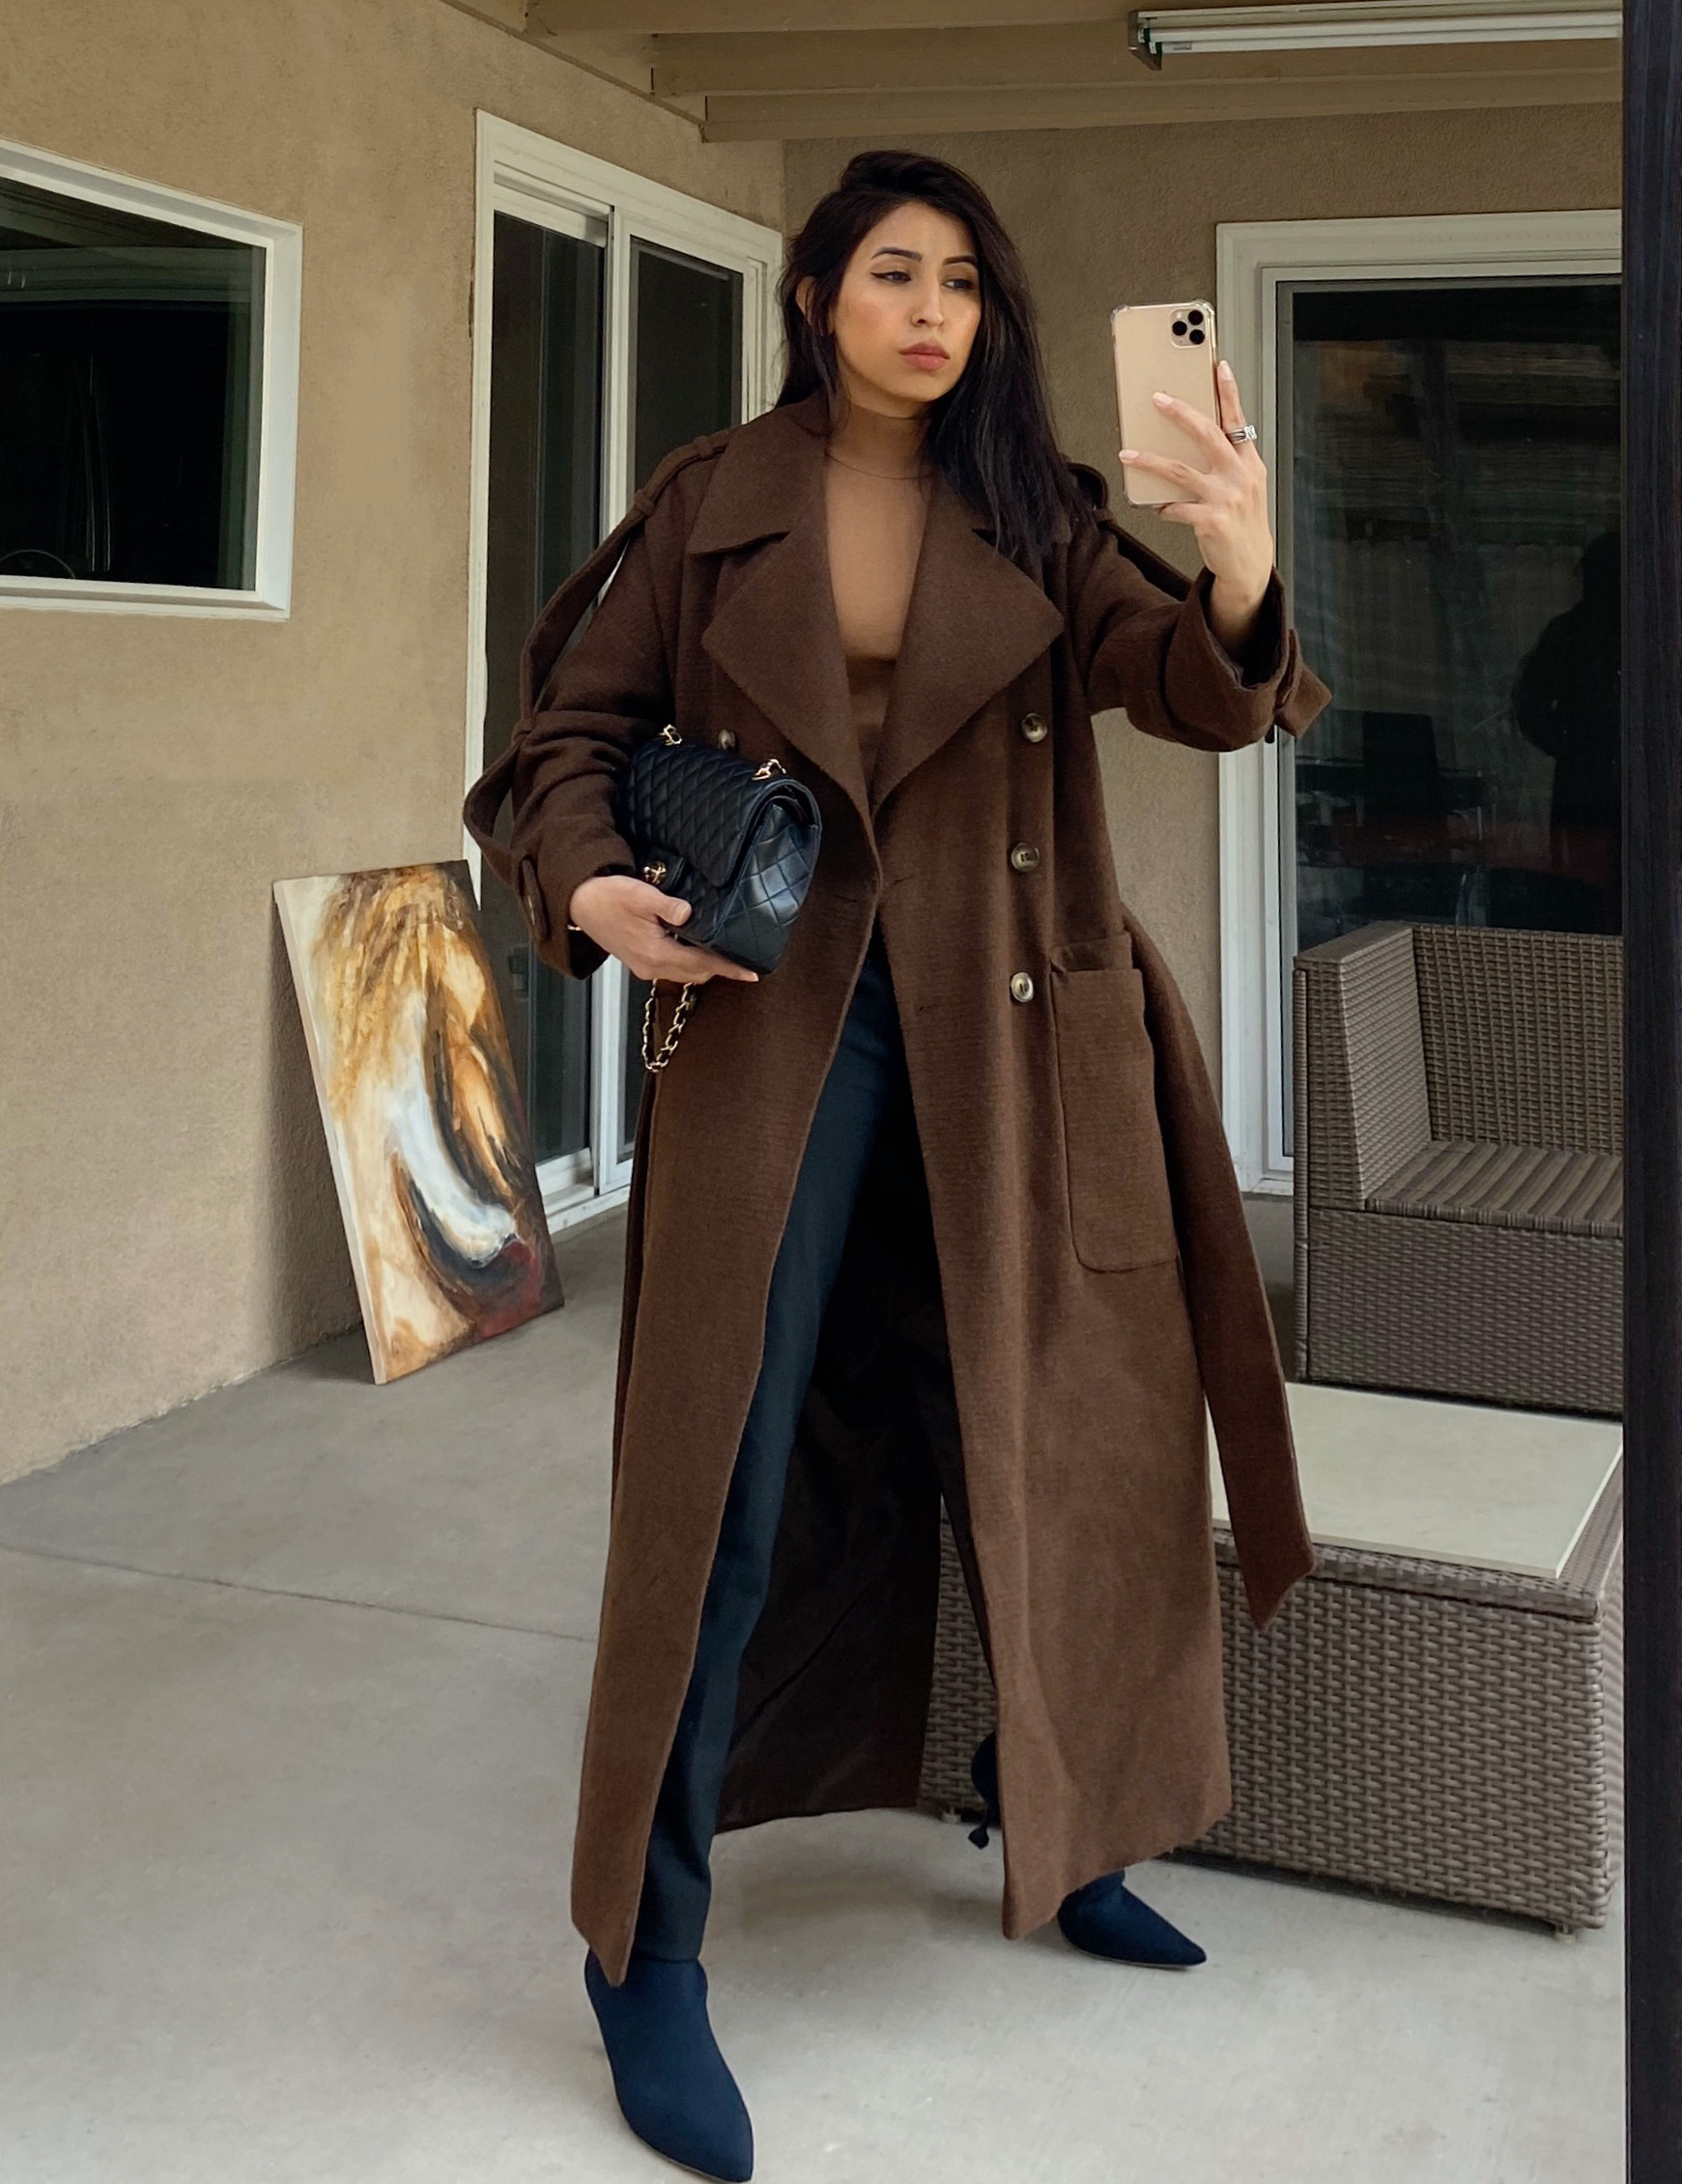 Utterly Stunning Coats At Great Deals That Are Must-Haves For The Season